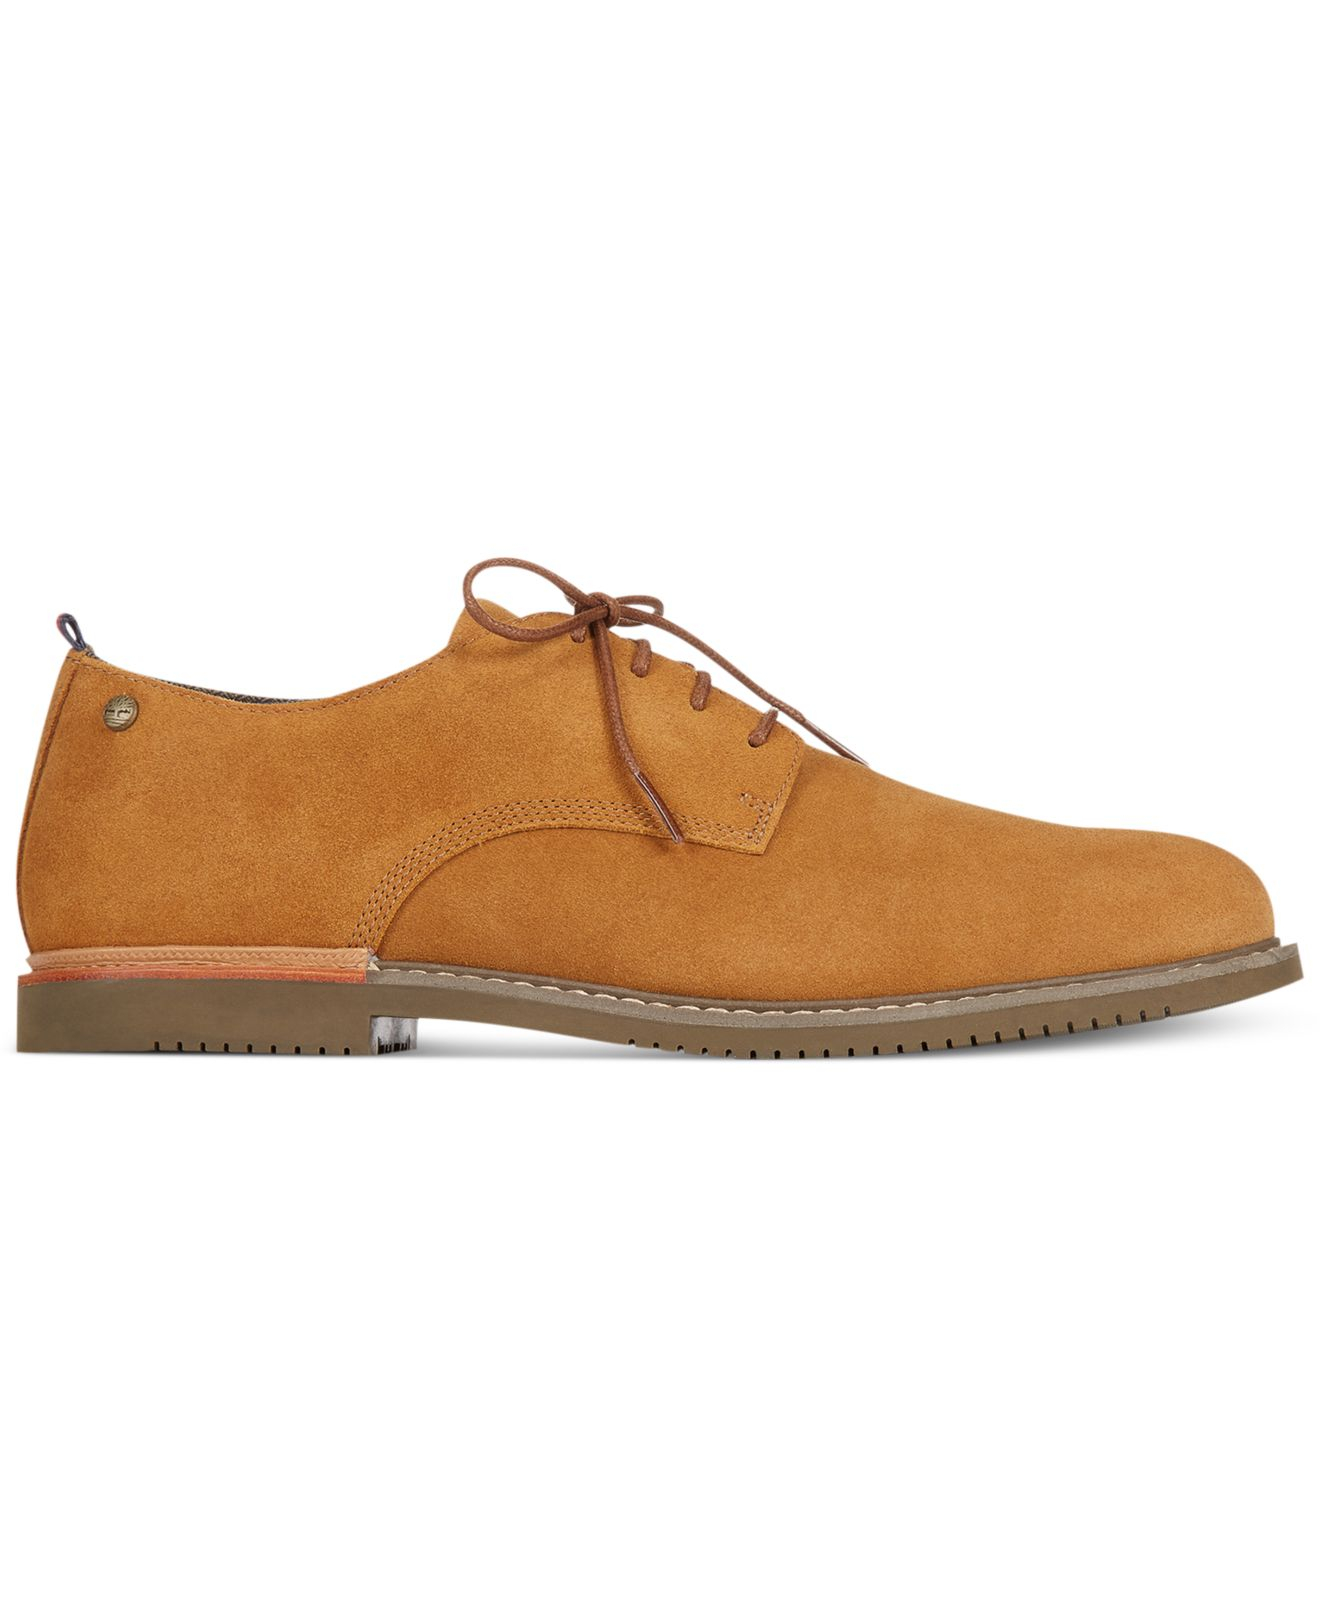 timberland earthkeepers stormbuck lite suede oxford shoes